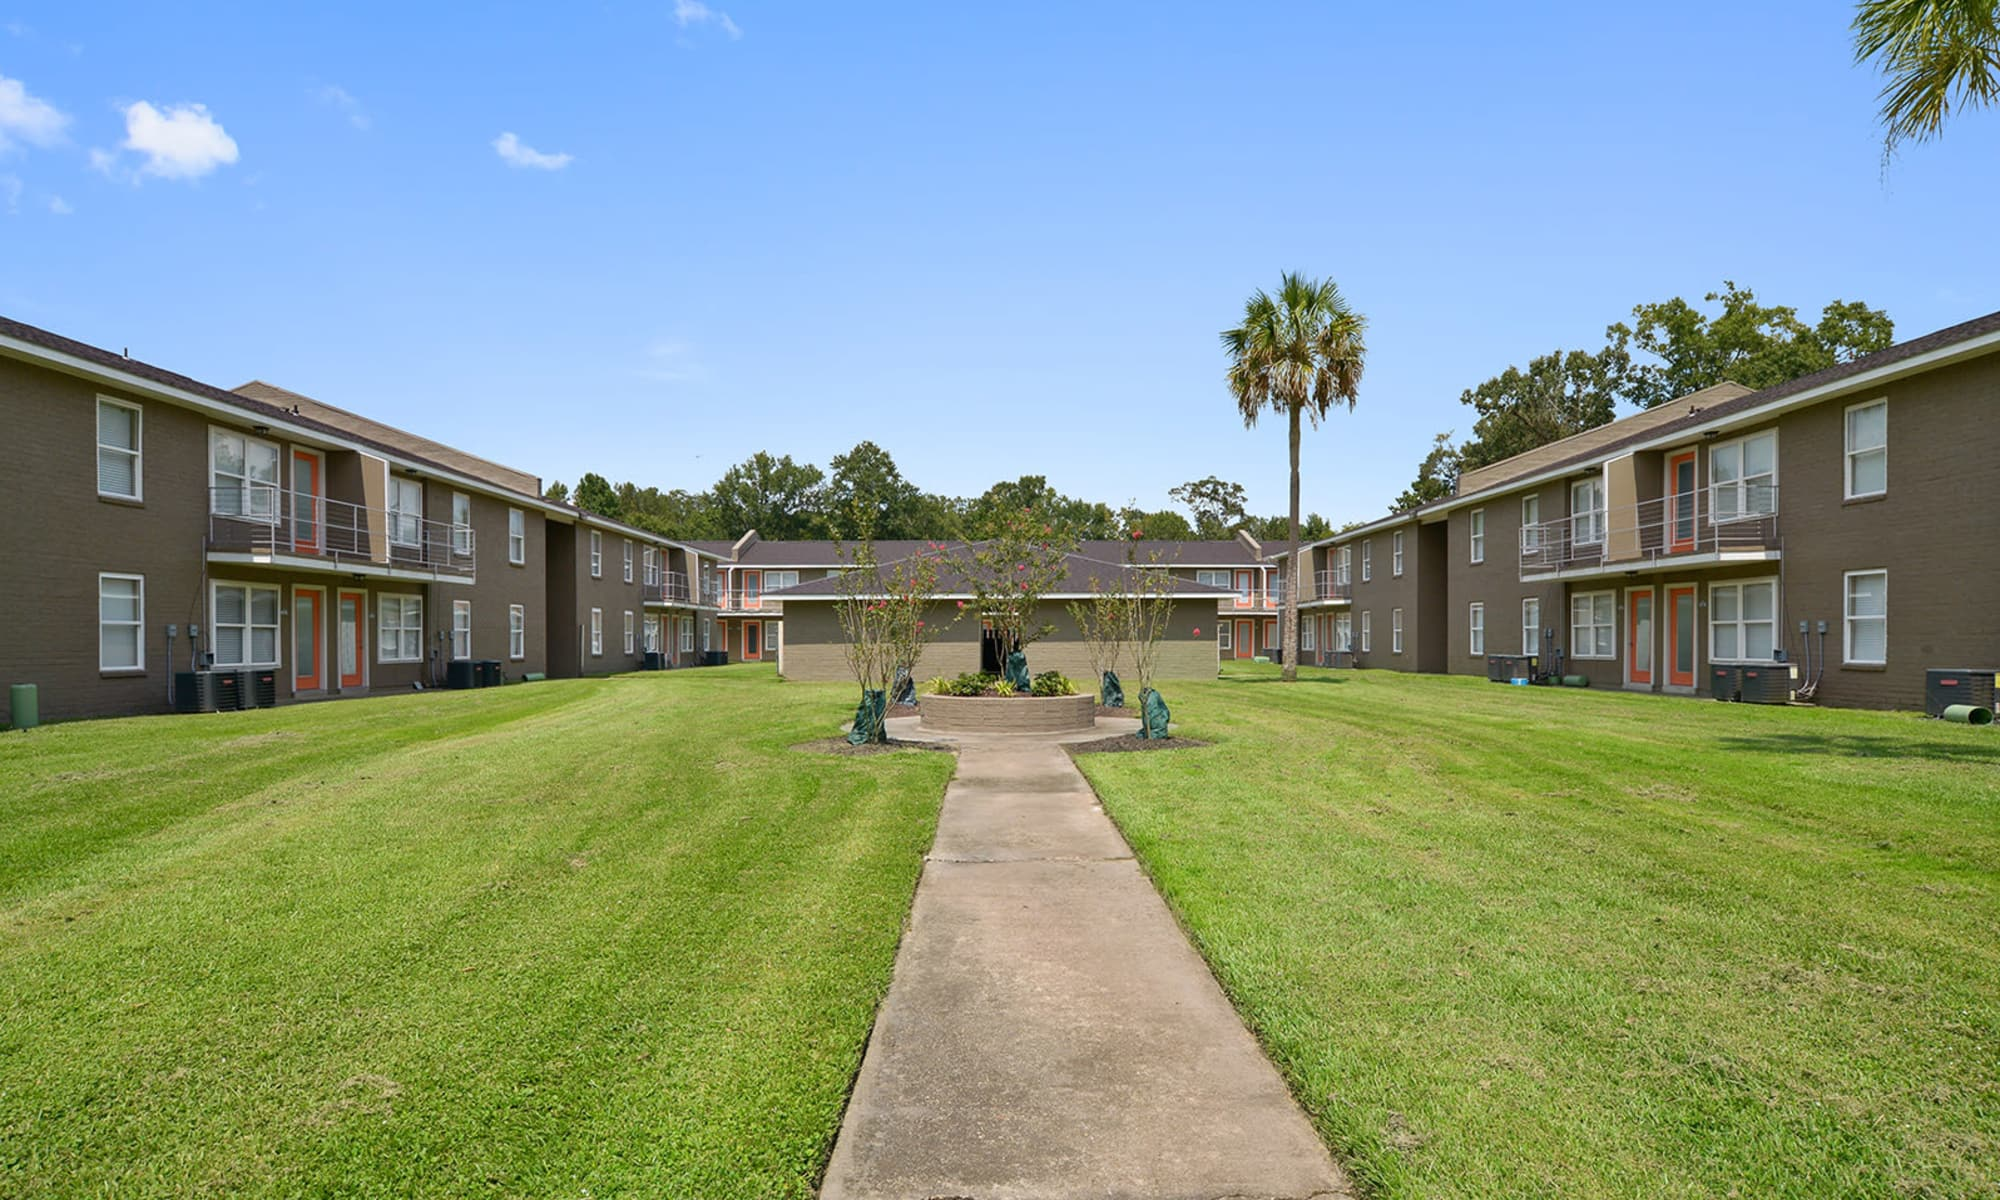 Apartments in Baton Rouge, LA